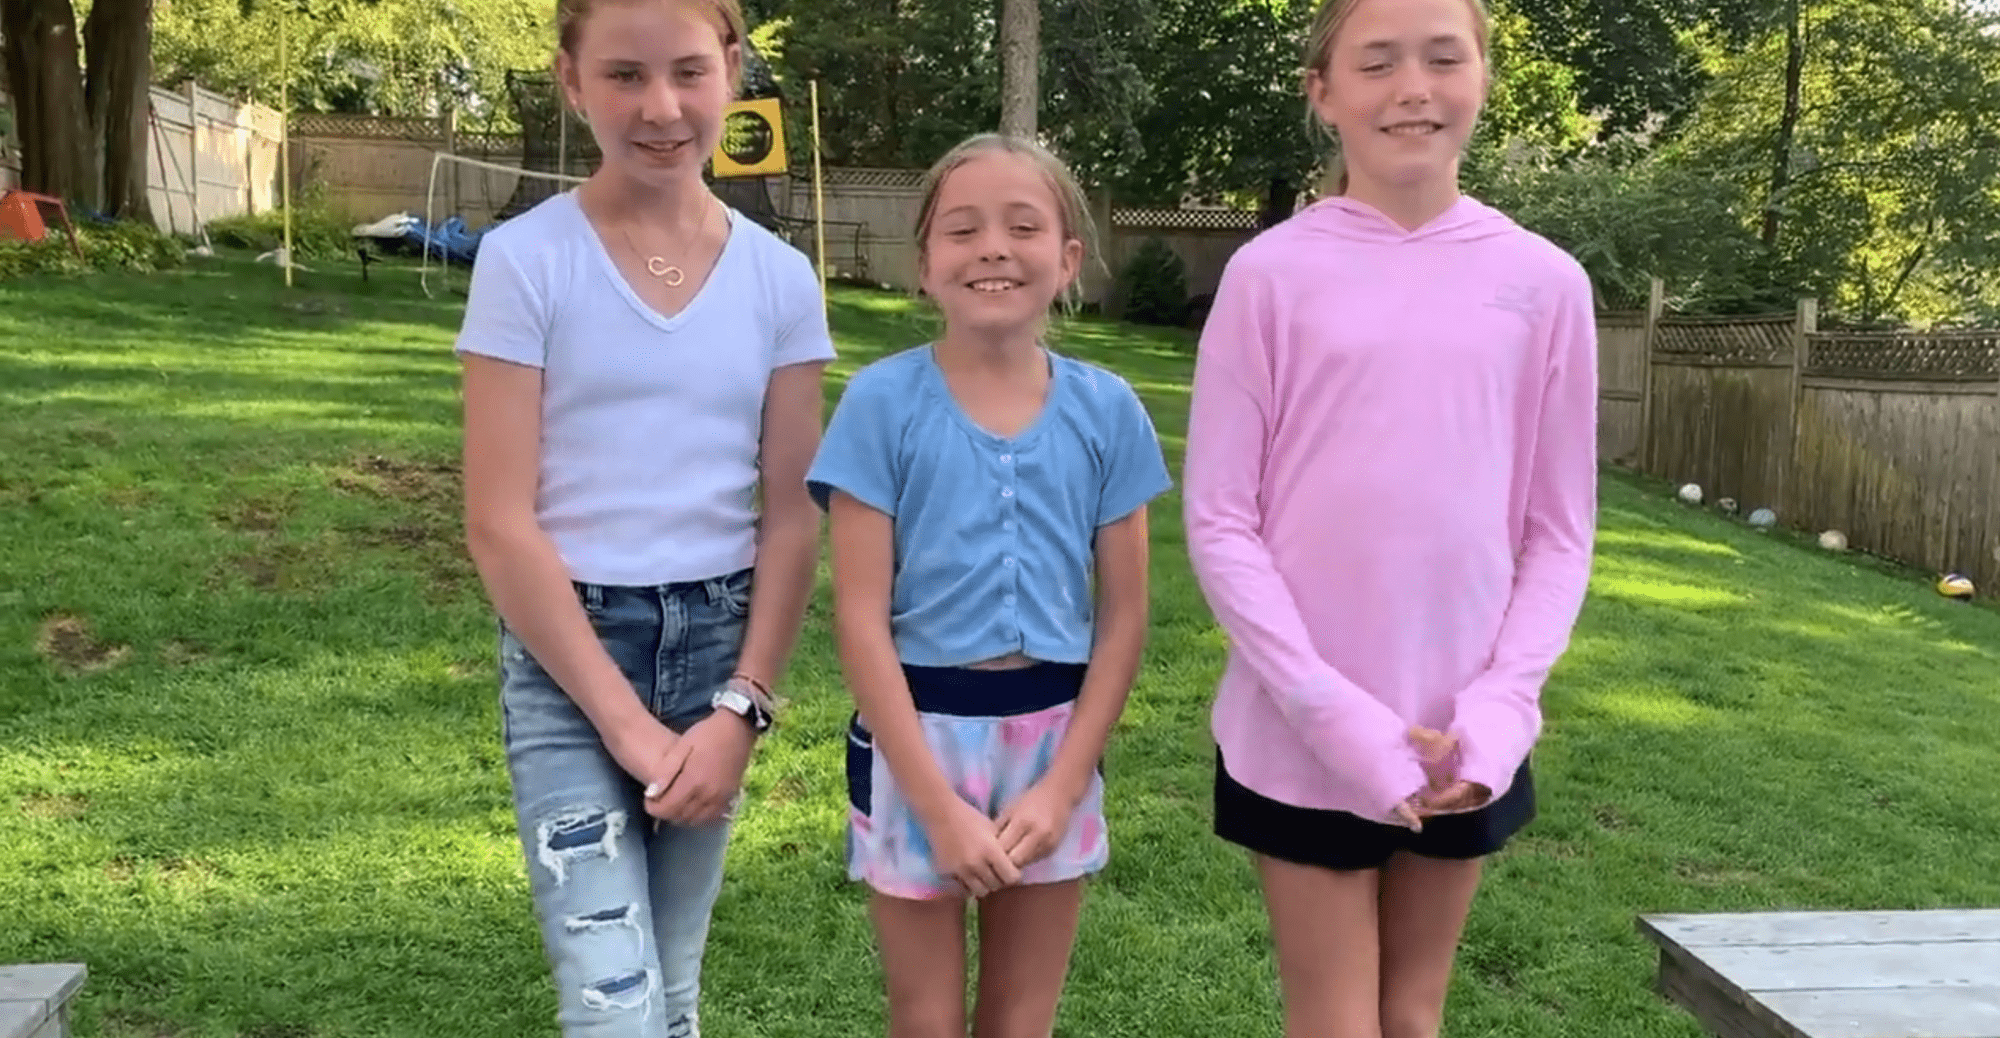 3 young girls smiling standing in their backyard